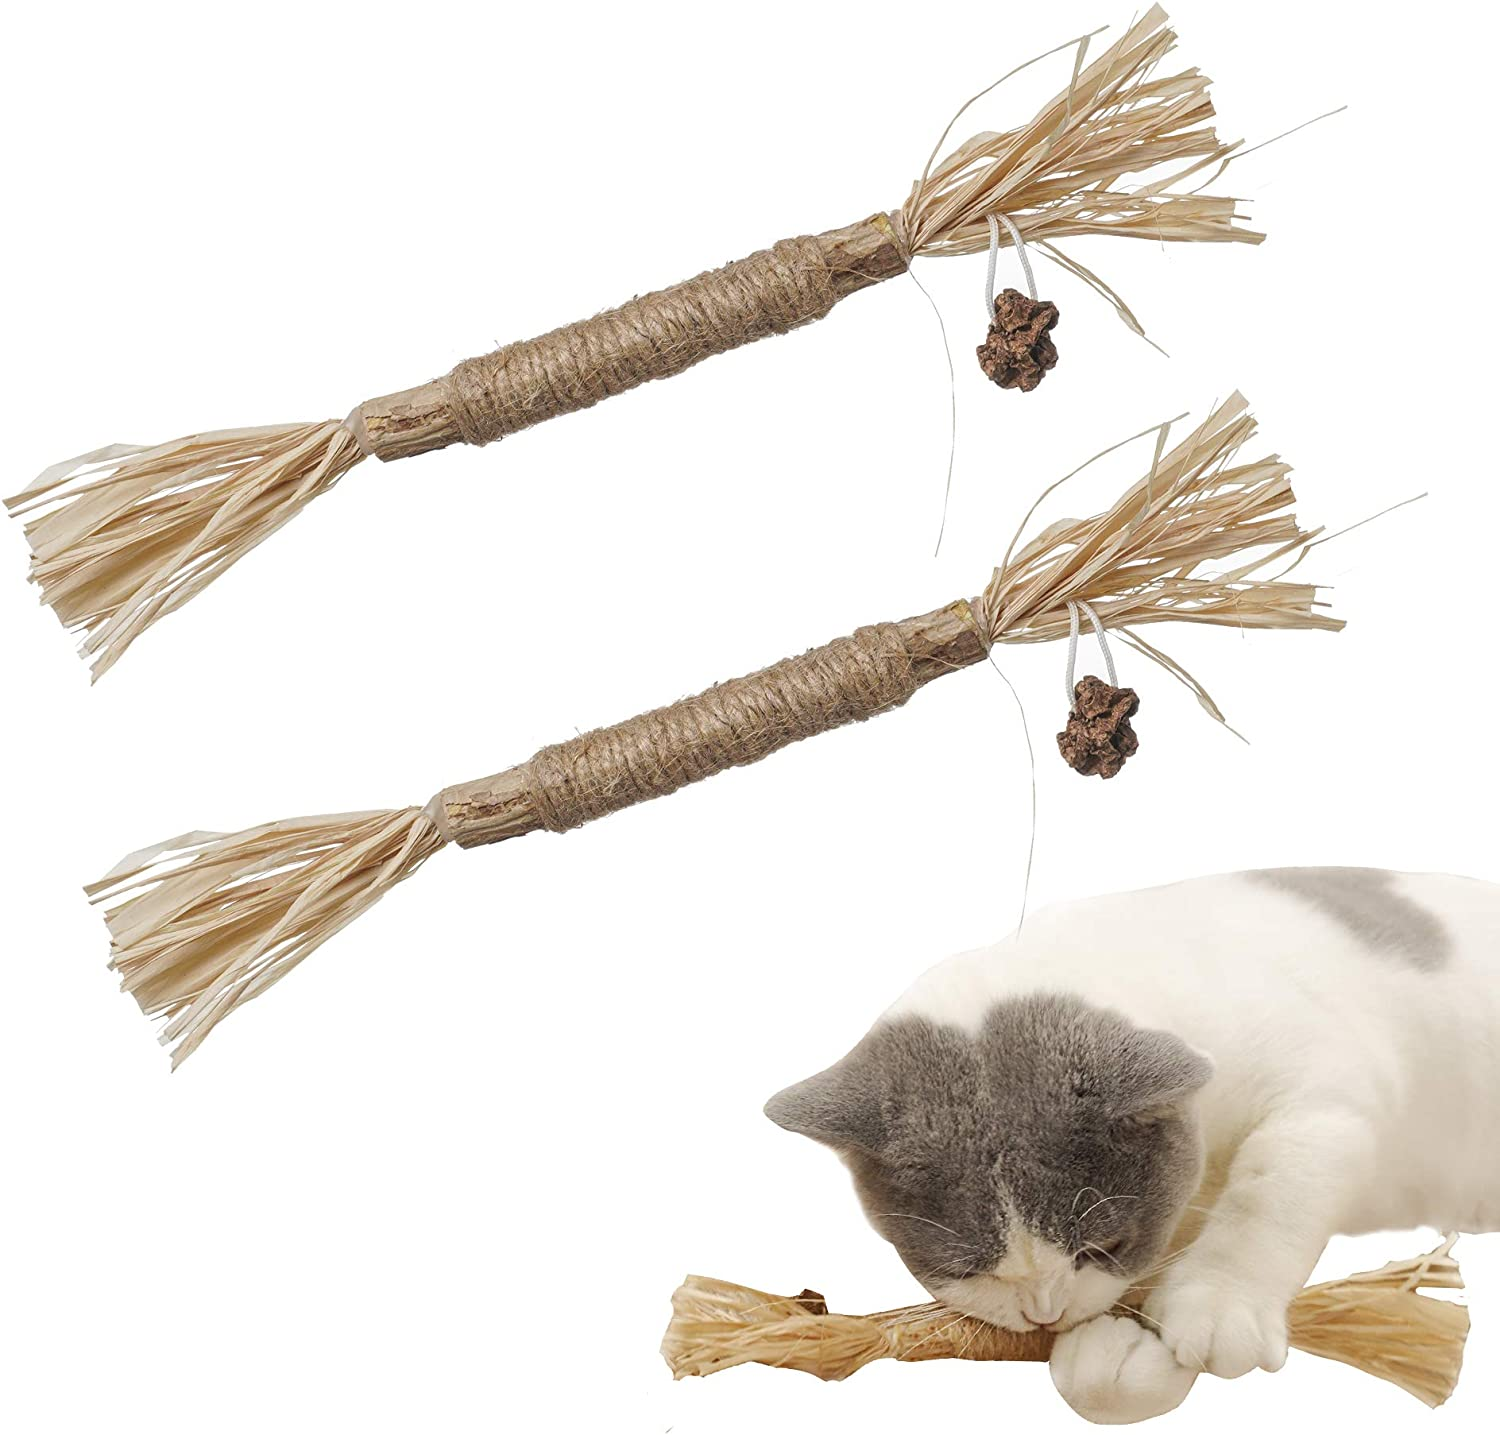 Paz's Gift Catnip Toys, Chew Sticks Cat Teeth Cleaning Chew Toy for, silvervine Sticks cat Cleaning Teeth, Make Your cat Feel Calm and Relaxed, cat chew Toy,Suitable for All Cats